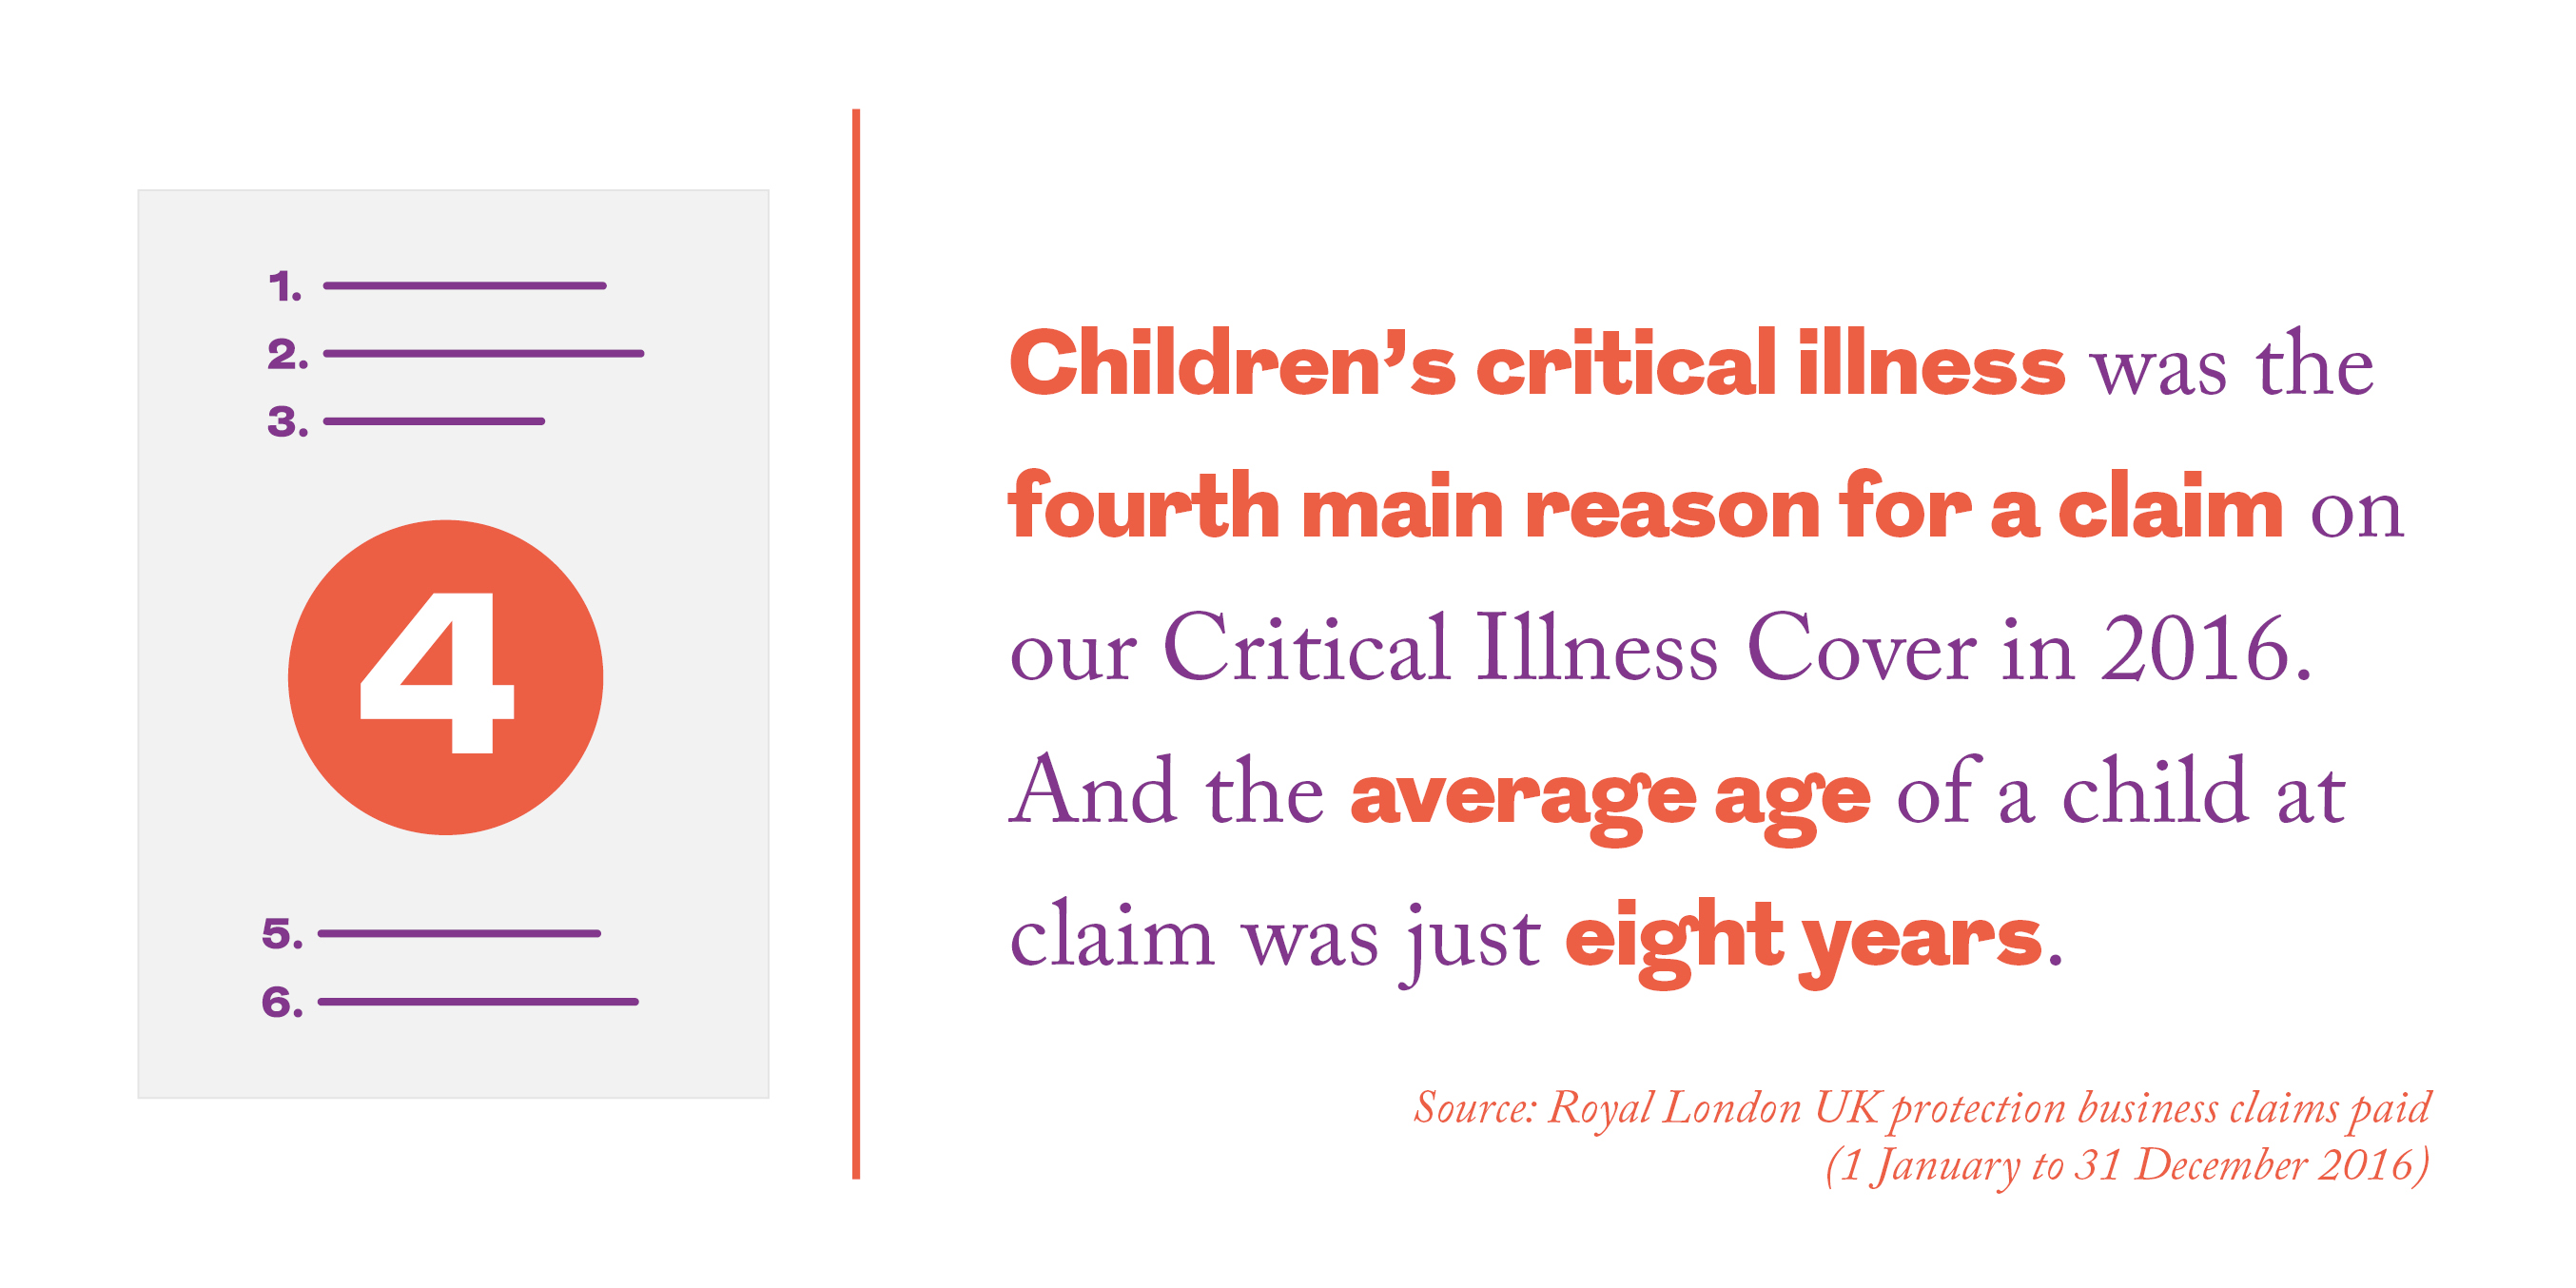 Children's critical illness was the fourth main reason for a claim on our Critical Illness Cover in 2016. And the average age of a child at claim was just eight years.  Source: Royal London UK protection business claims paid (1 January to 31 December 2016)